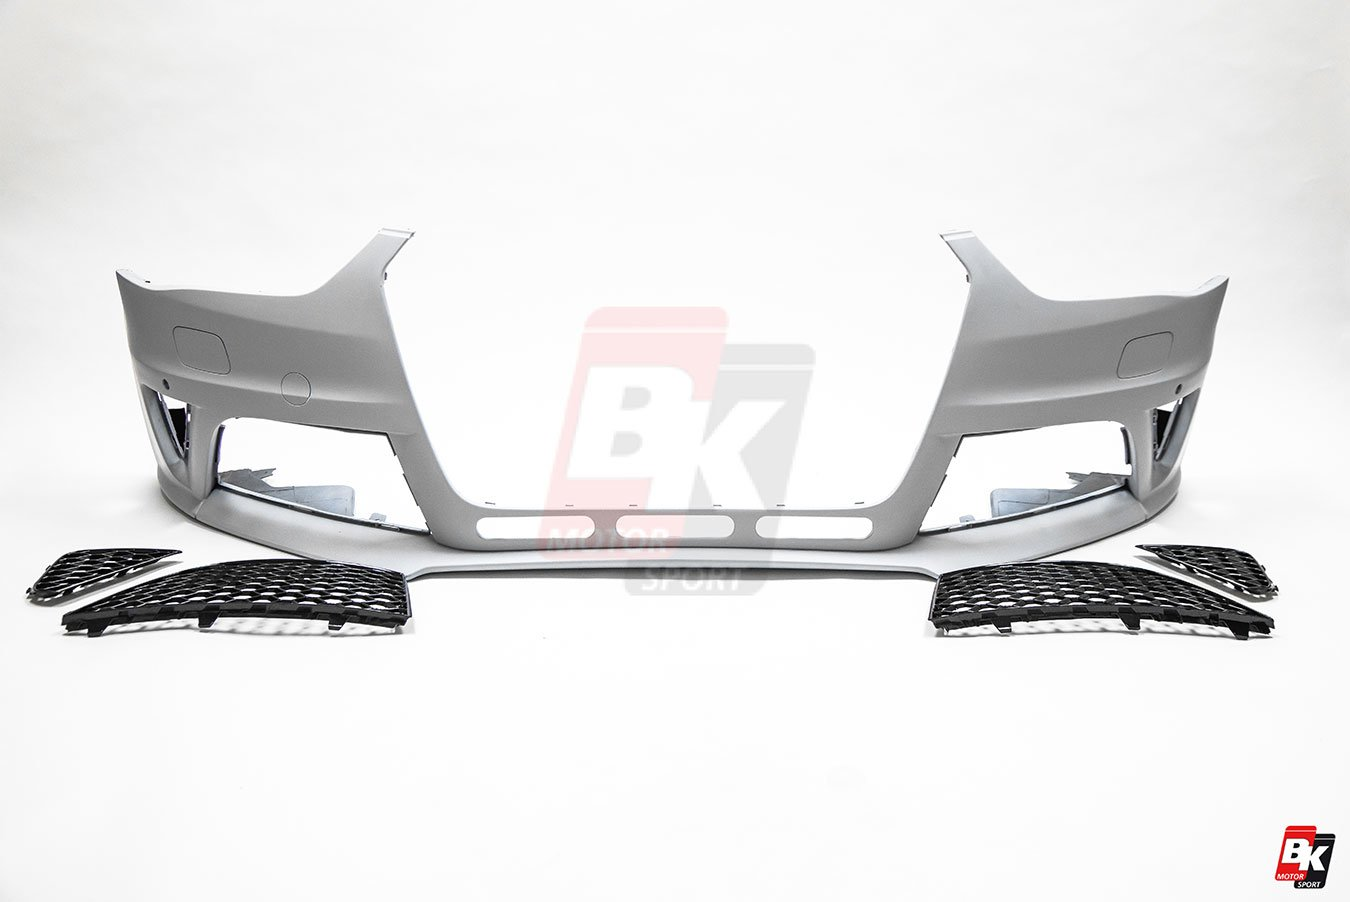 BKM Front Bumper Kit without Front Grille (RS Style), fits Audi A4/S4 B8.5